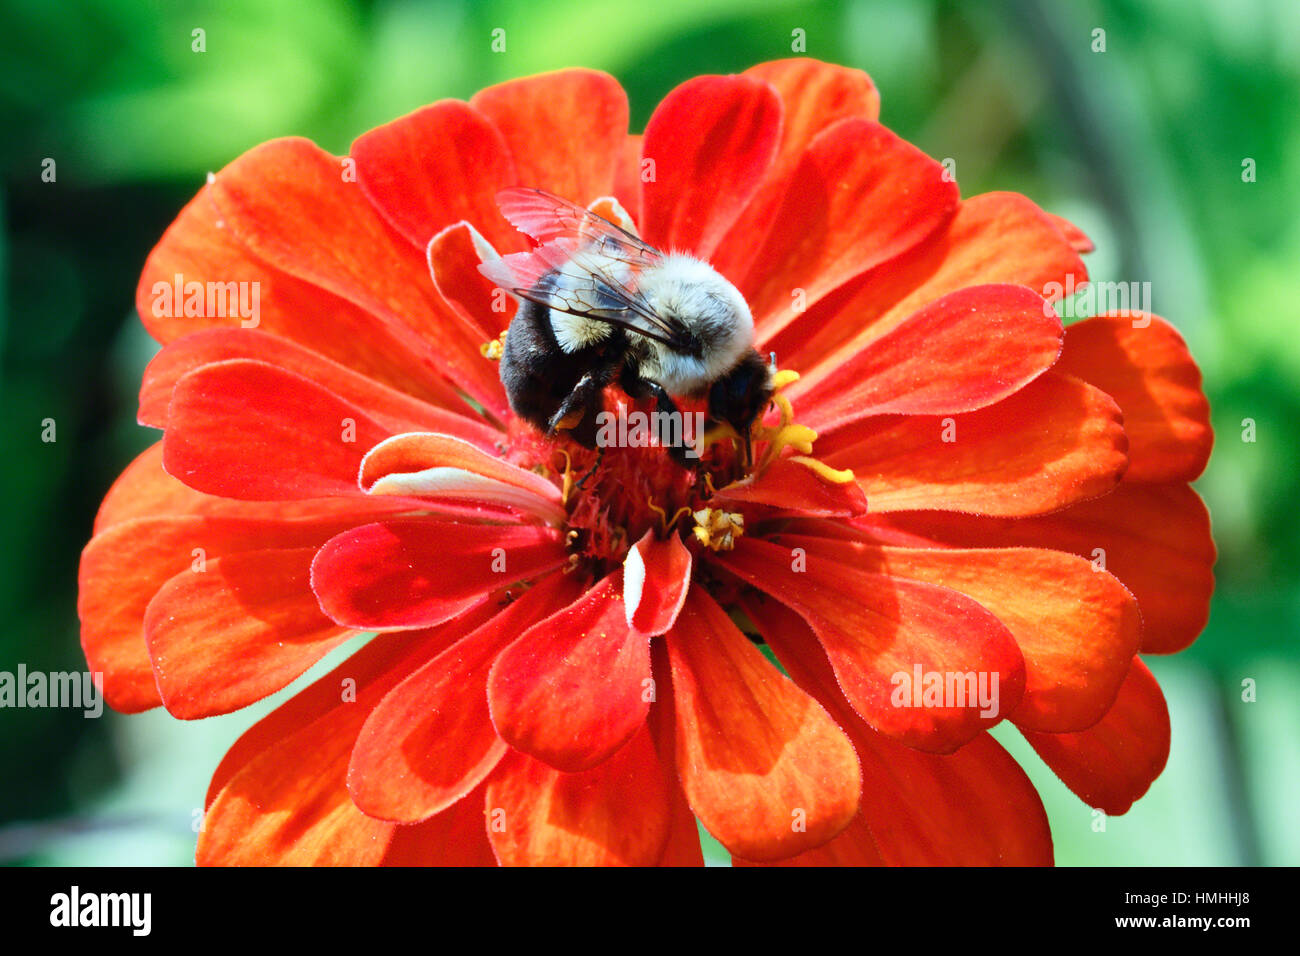 Close Up View of a Honey Bee Pollenating a Red Zinnia Flower Stock Photo